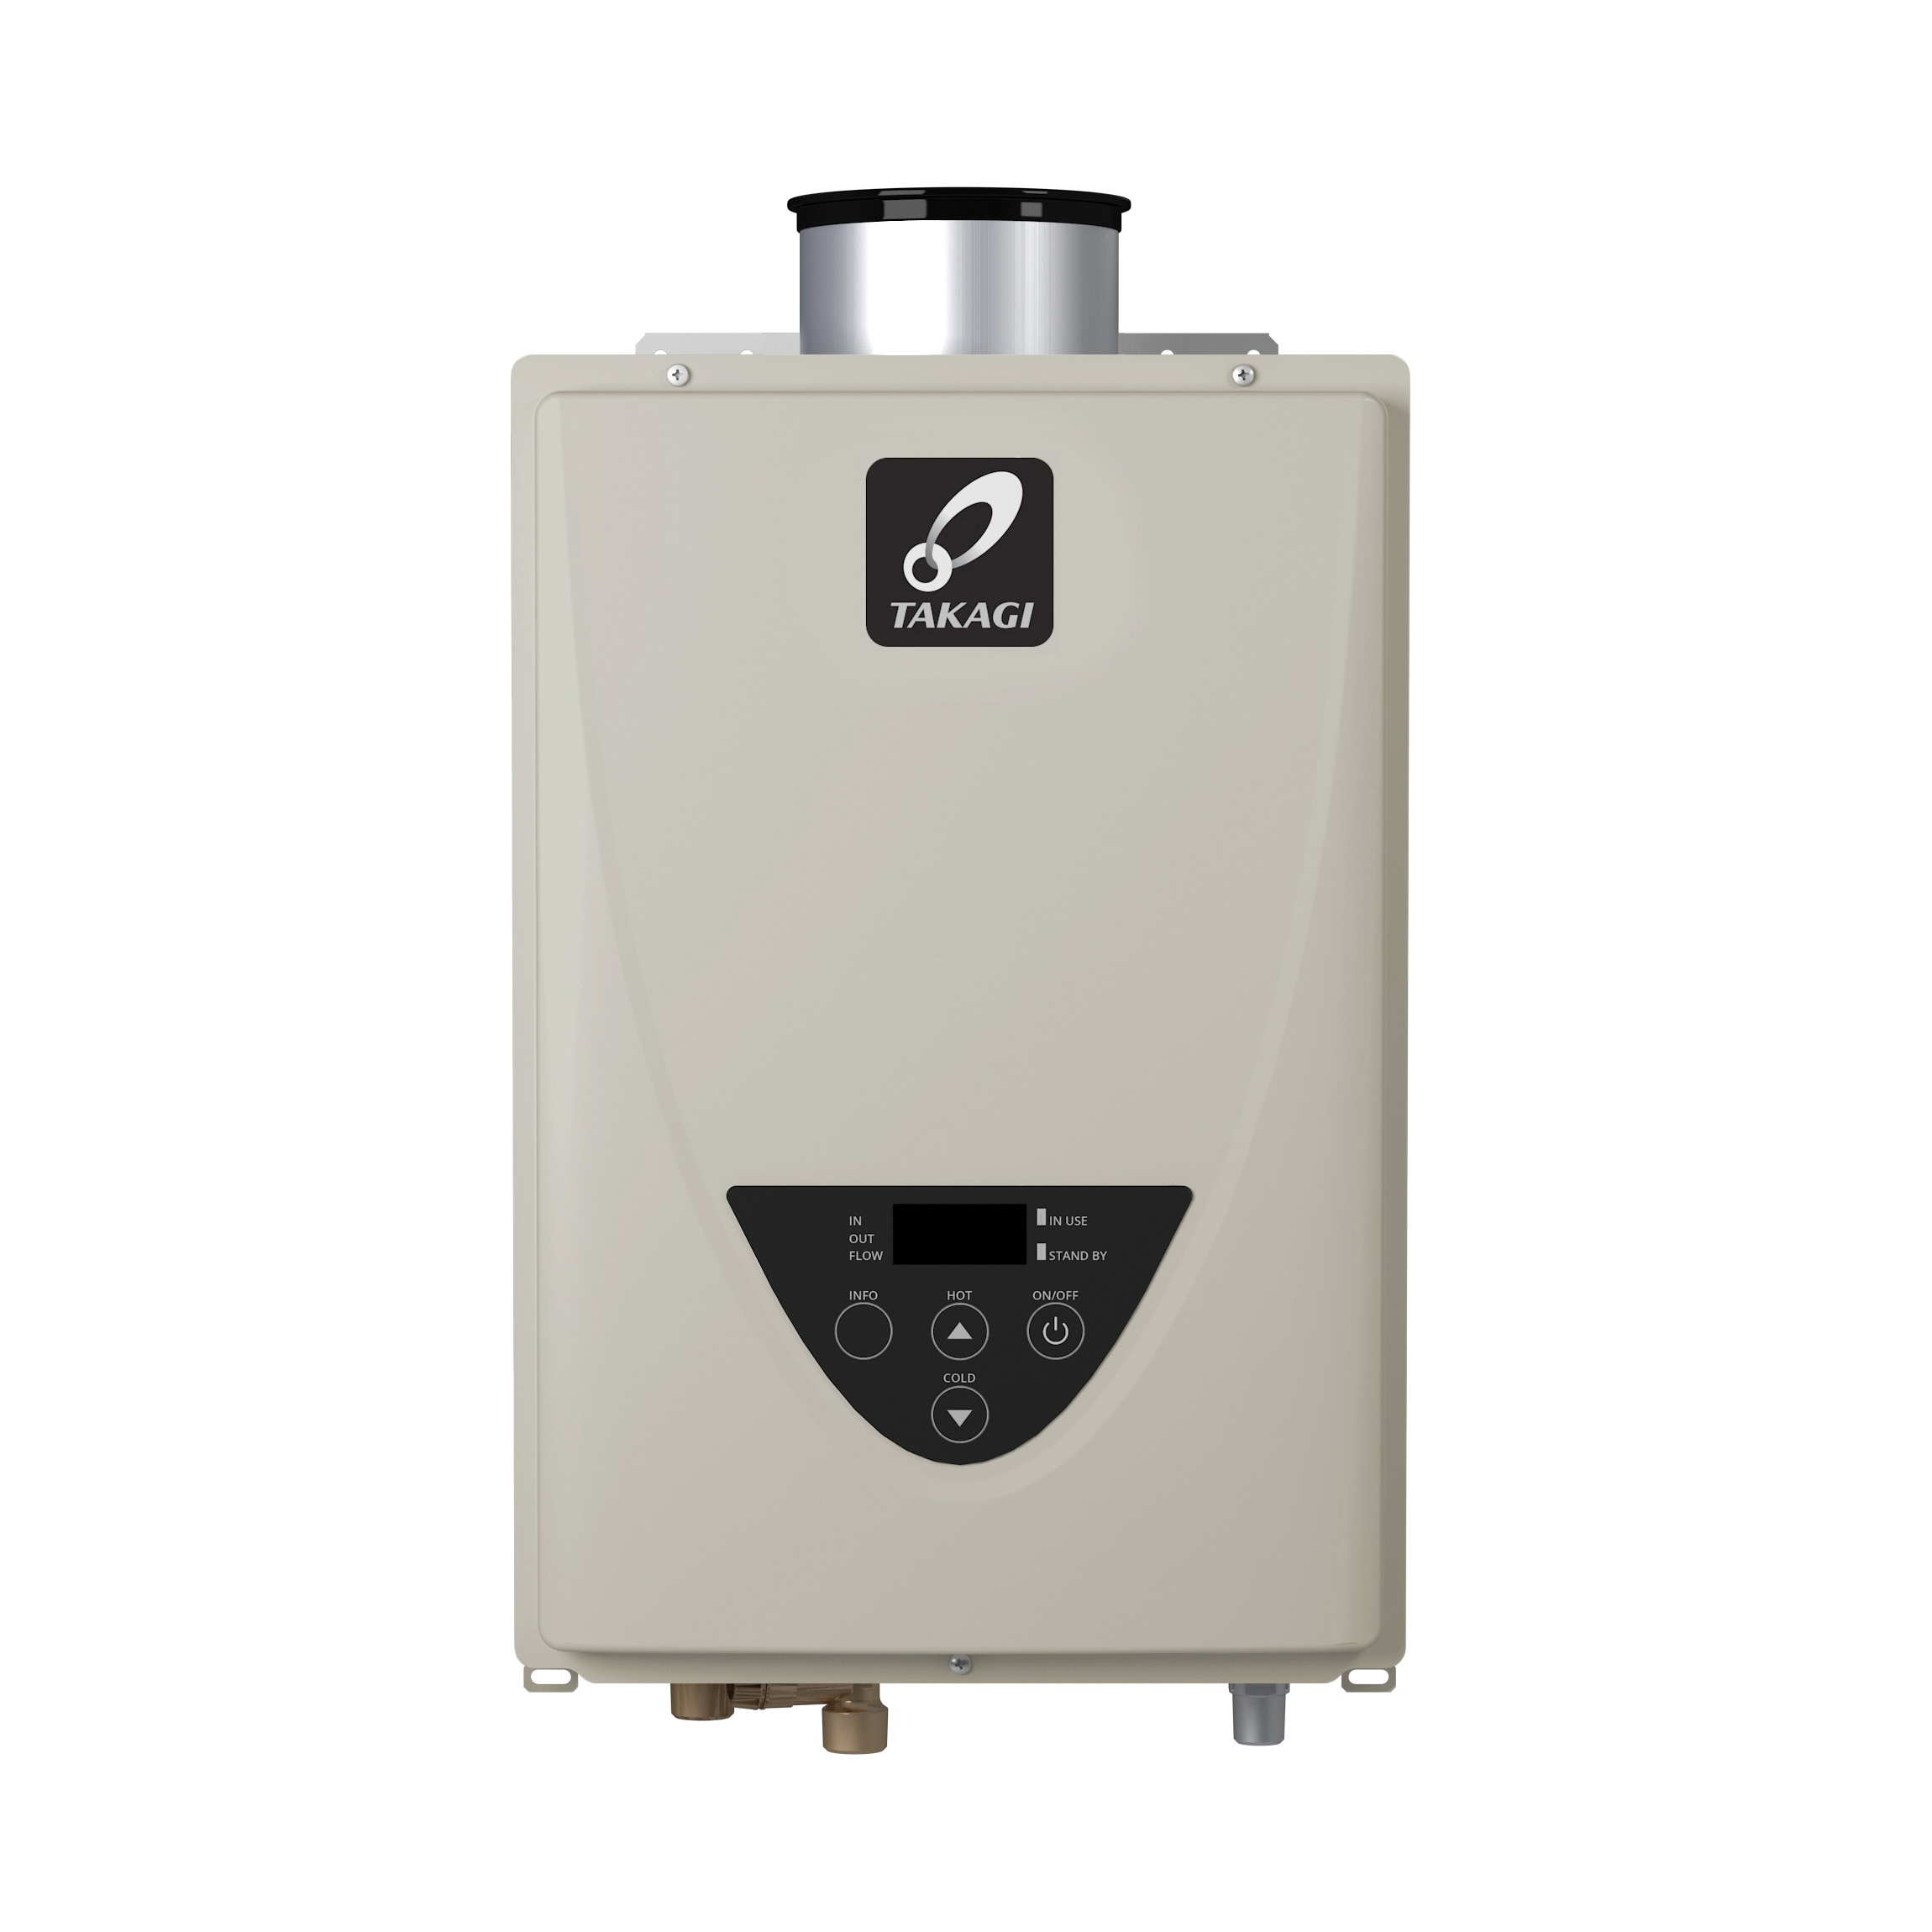 Takagi TK110CNING TK-110C Tankless Water Heater, Natural Gas Fuel, 140000 Btu/hr Heating, Indoor/Outdoor: Indoor, Condensing/Non Condensing: Non-Condensing, 6.6 gpm, 3 in, 5 in Concentric Vent, 0.81, Commercial/Residential/Dual: Residential